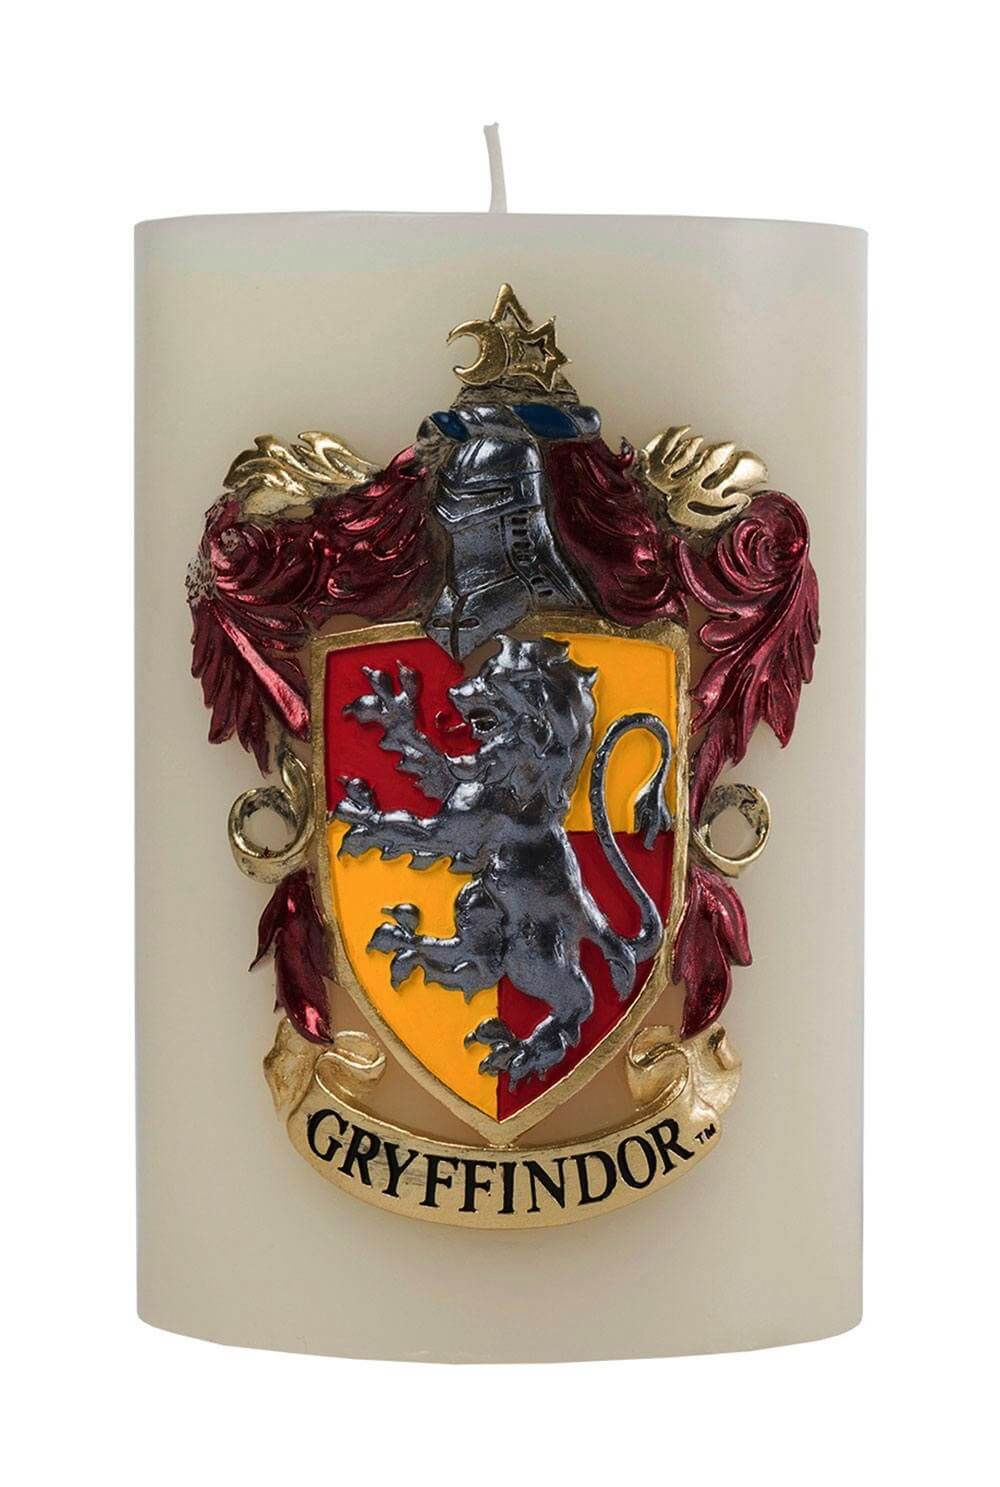 BOUGIE GRYFFONDOR XL 15 X 10 CM - HARRY POTTER